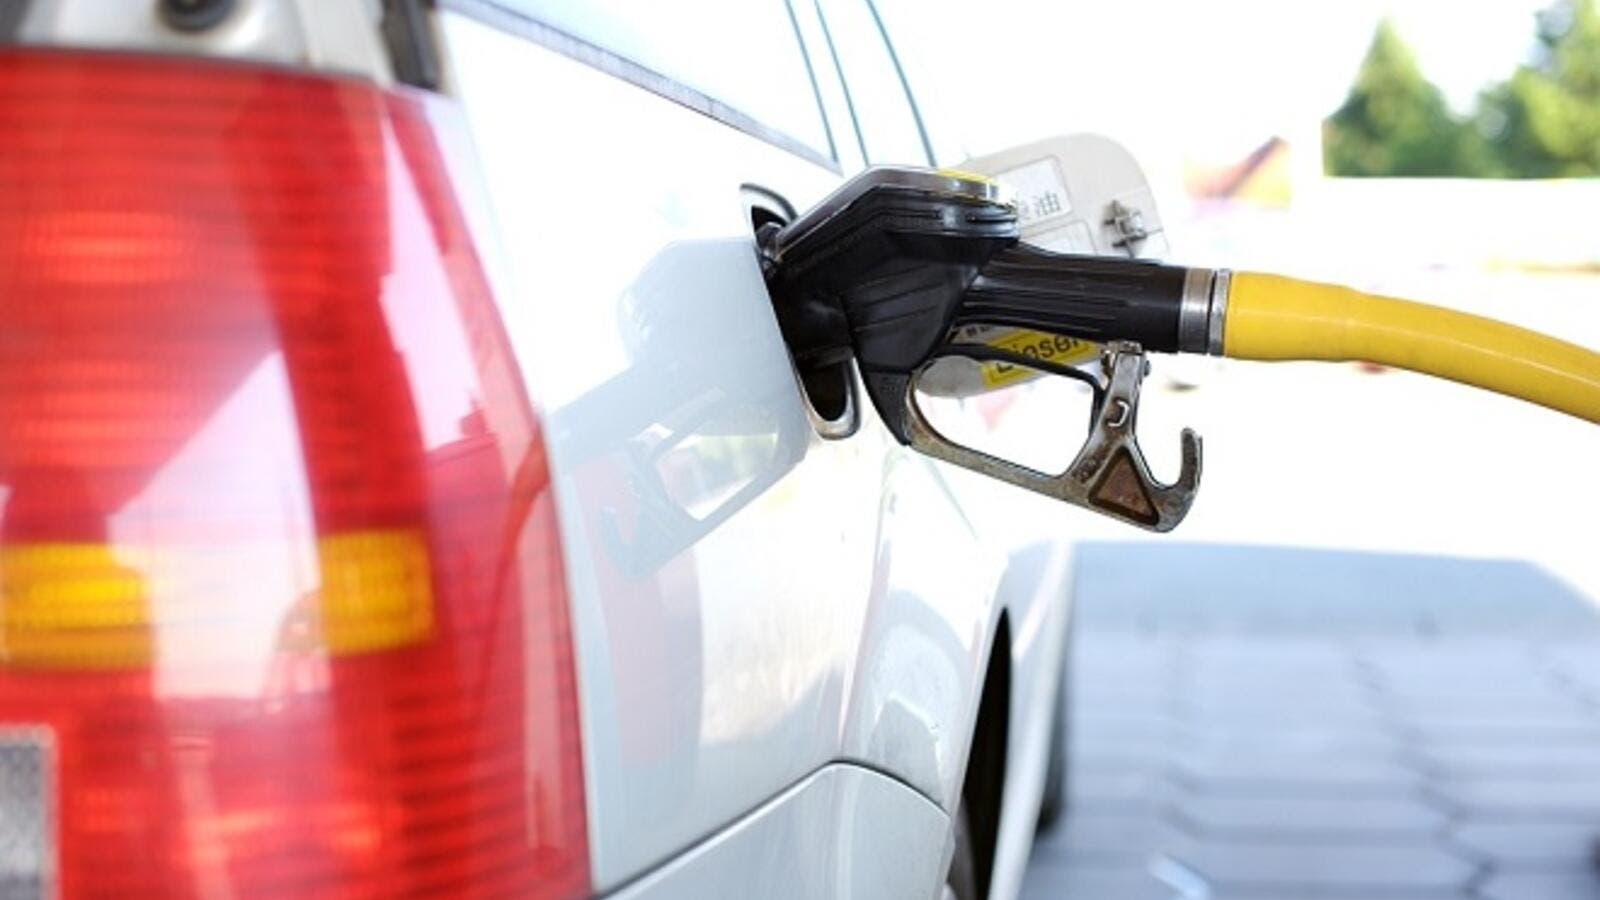 Fuel prices had declined in January as well. (Shutterstock)